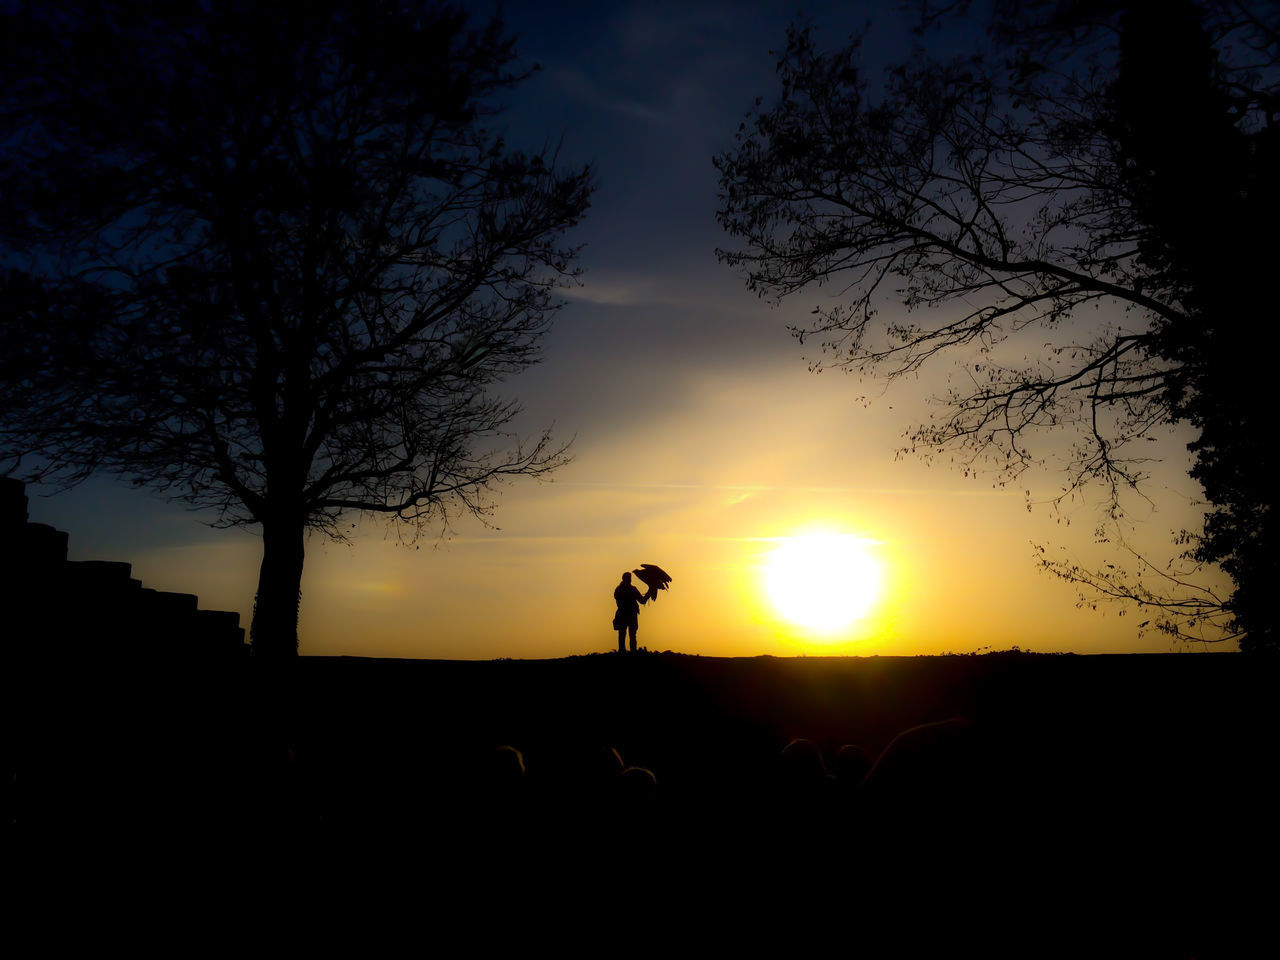 Man with bird against sunset Baden-Württemberg  Beauty In Nature Bird Cloud - Sky Falcon GERMANY🇩🇪DEUTSCHERLAND@ Mammal Man Nature One Person Outdoors People Silhouette Sky Sun Sunset Tree Surrealism Surreal Dreamlike